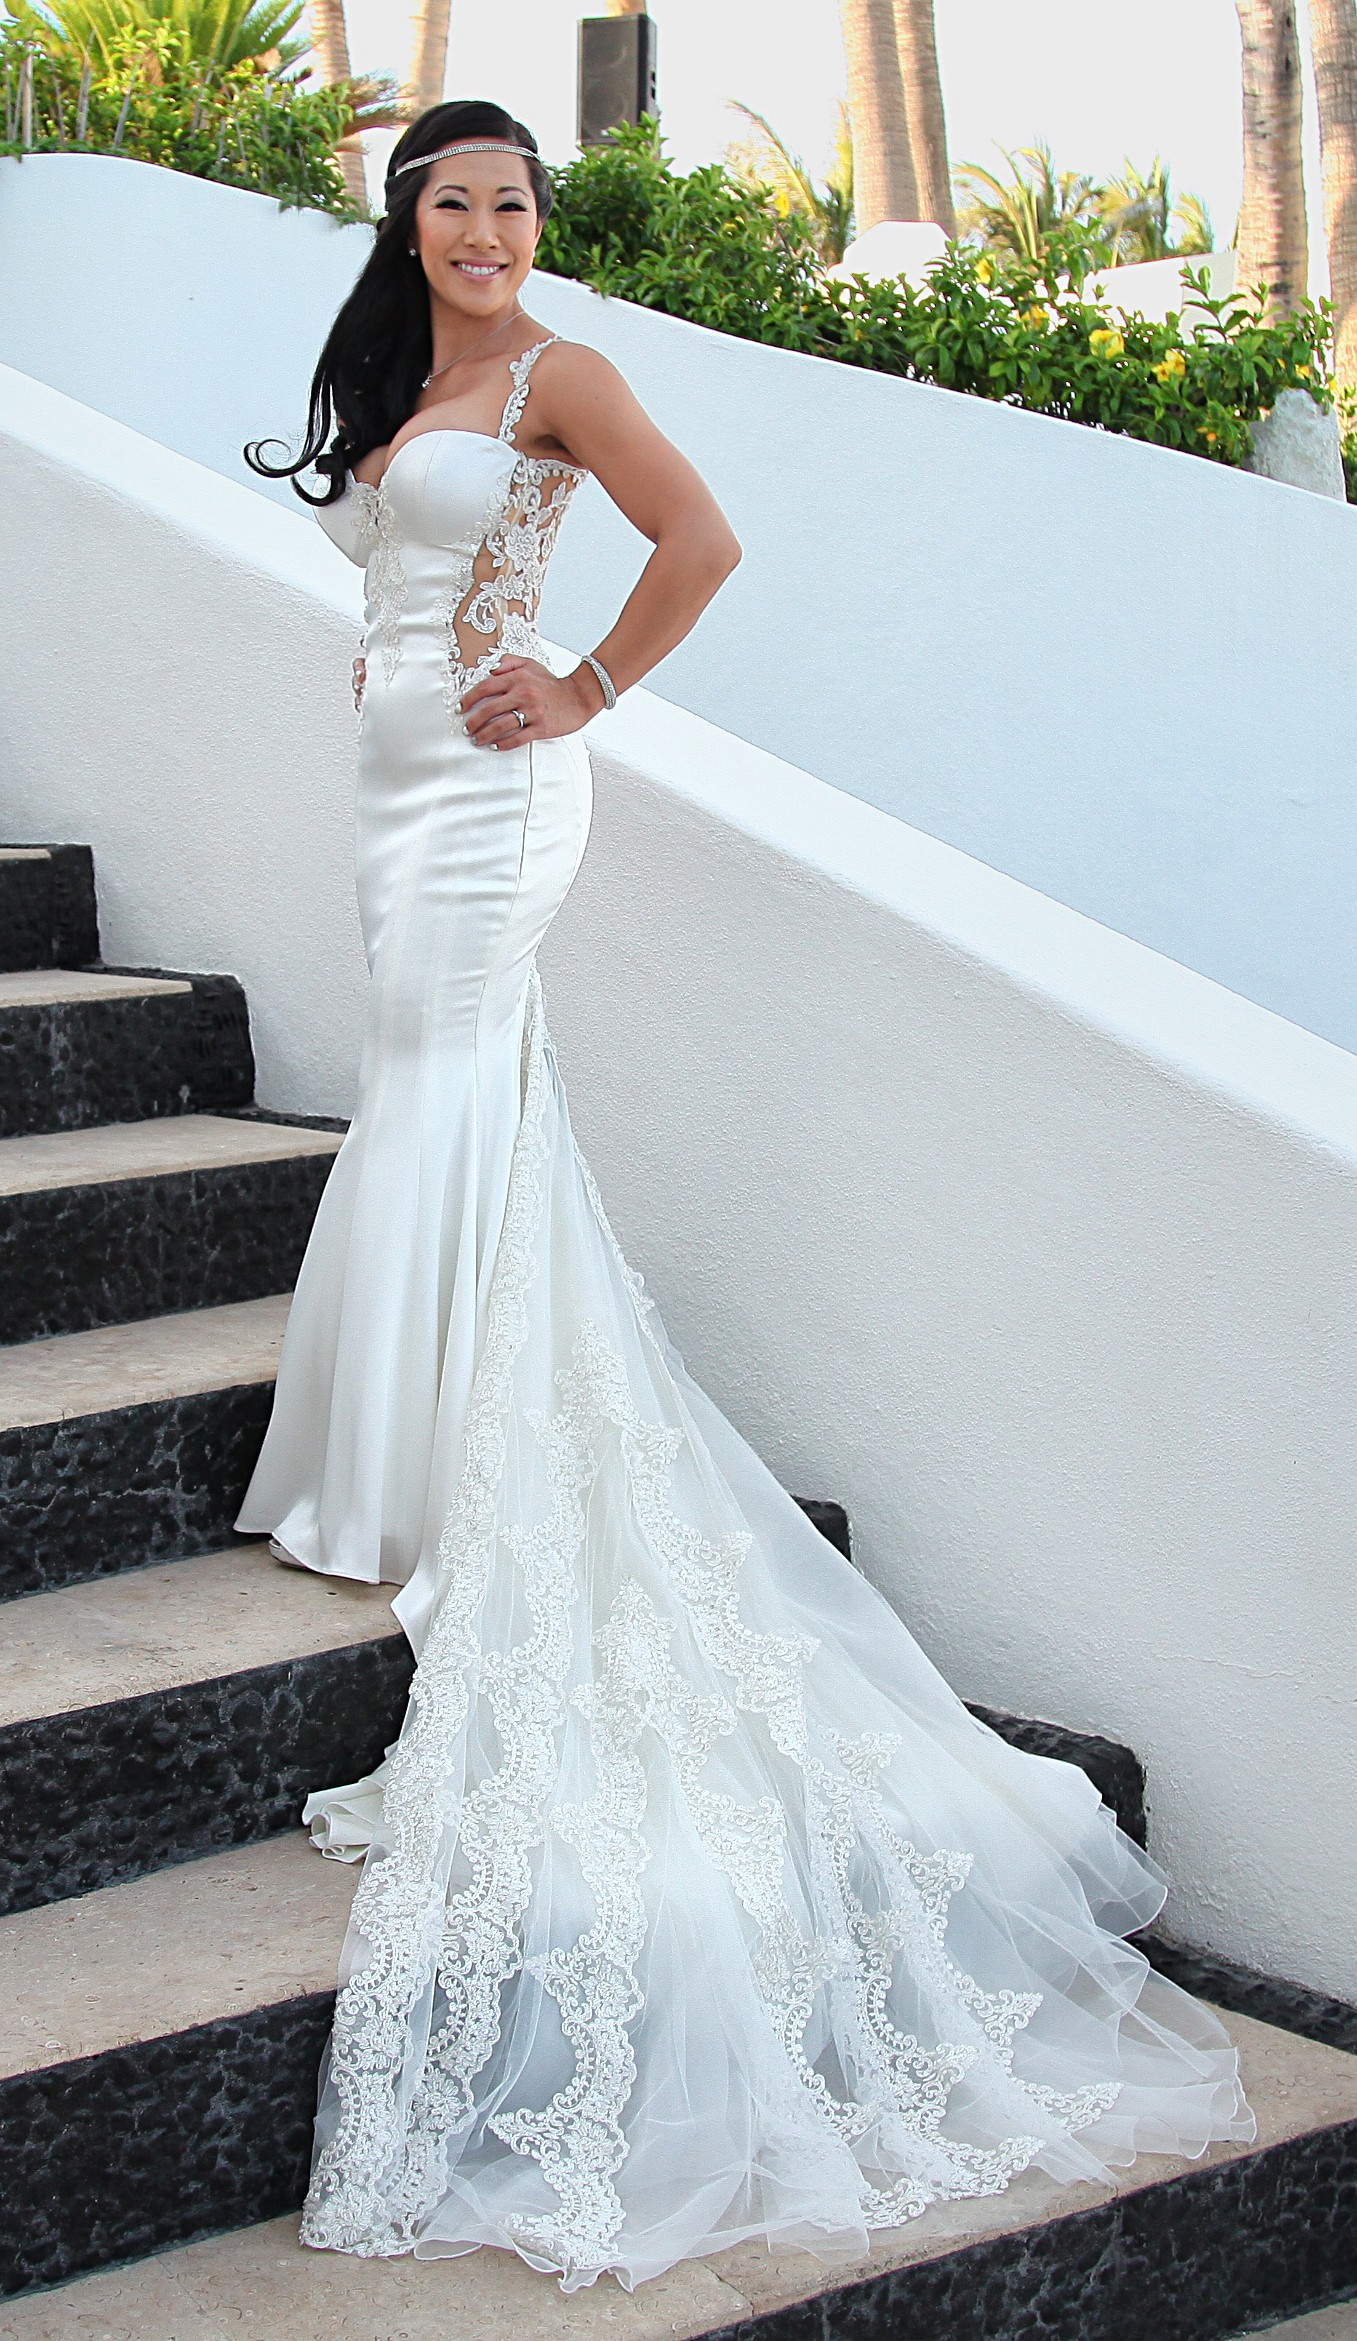 Galia lahav antonia second hand wedding dress on sale 59 off for Second hand wedding dresses san diego